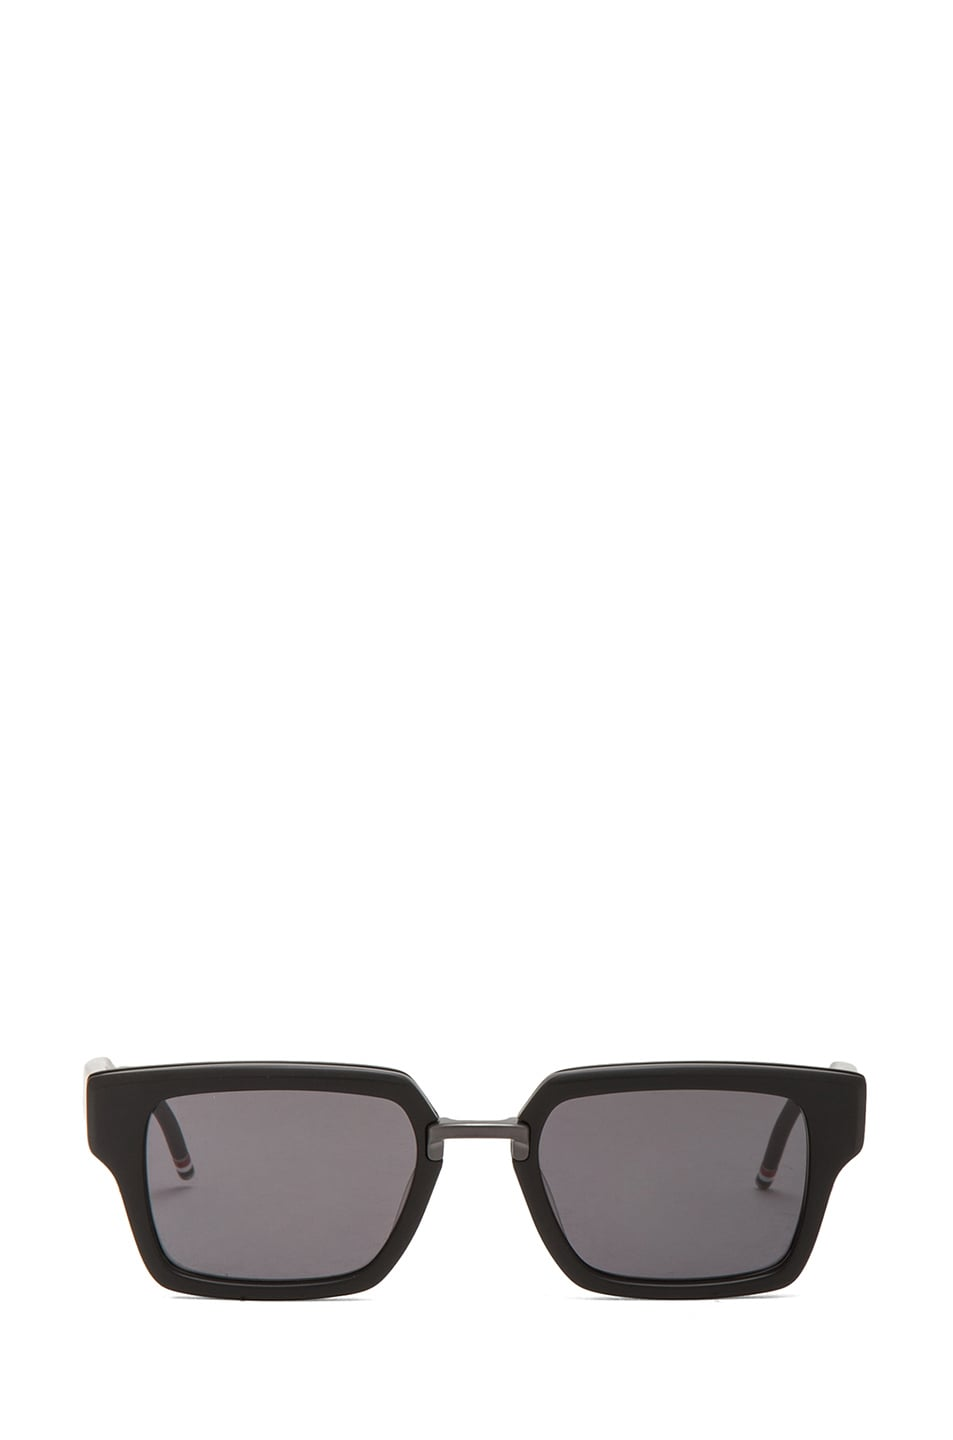 7442f3f68fc Image 1 of Thom Browne Thick Rectangle Frame Sunglasses in Matte Black